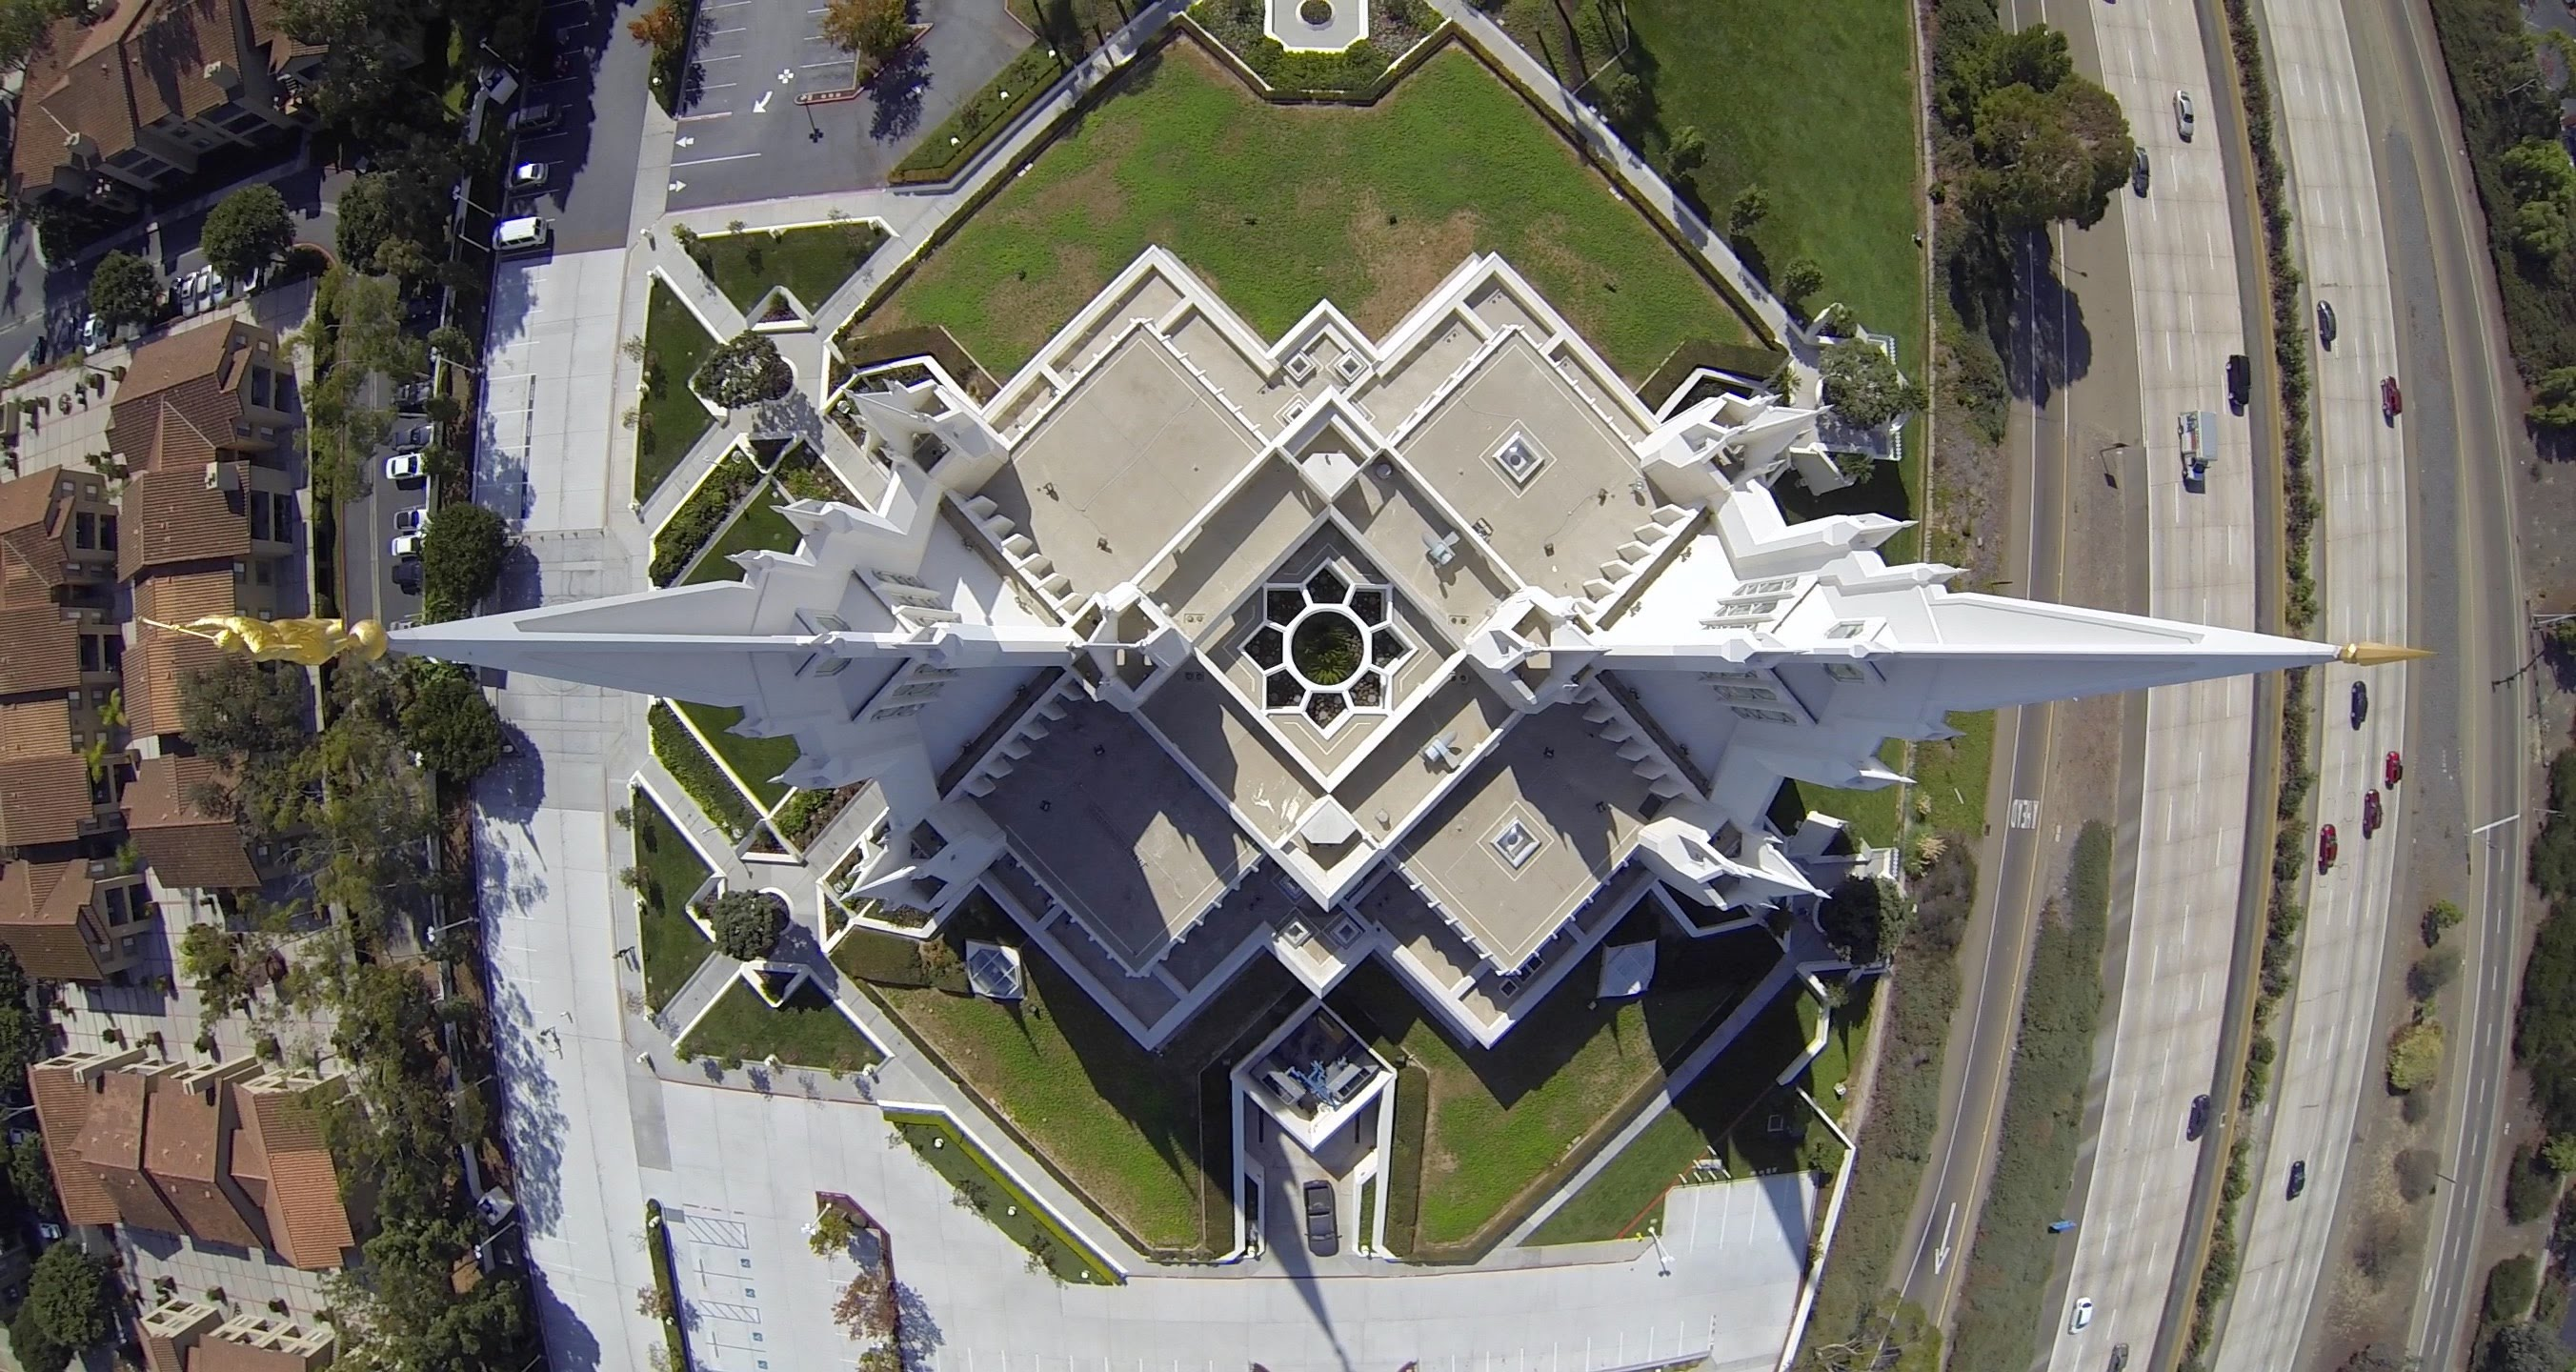 Aerial view of the top of the temple